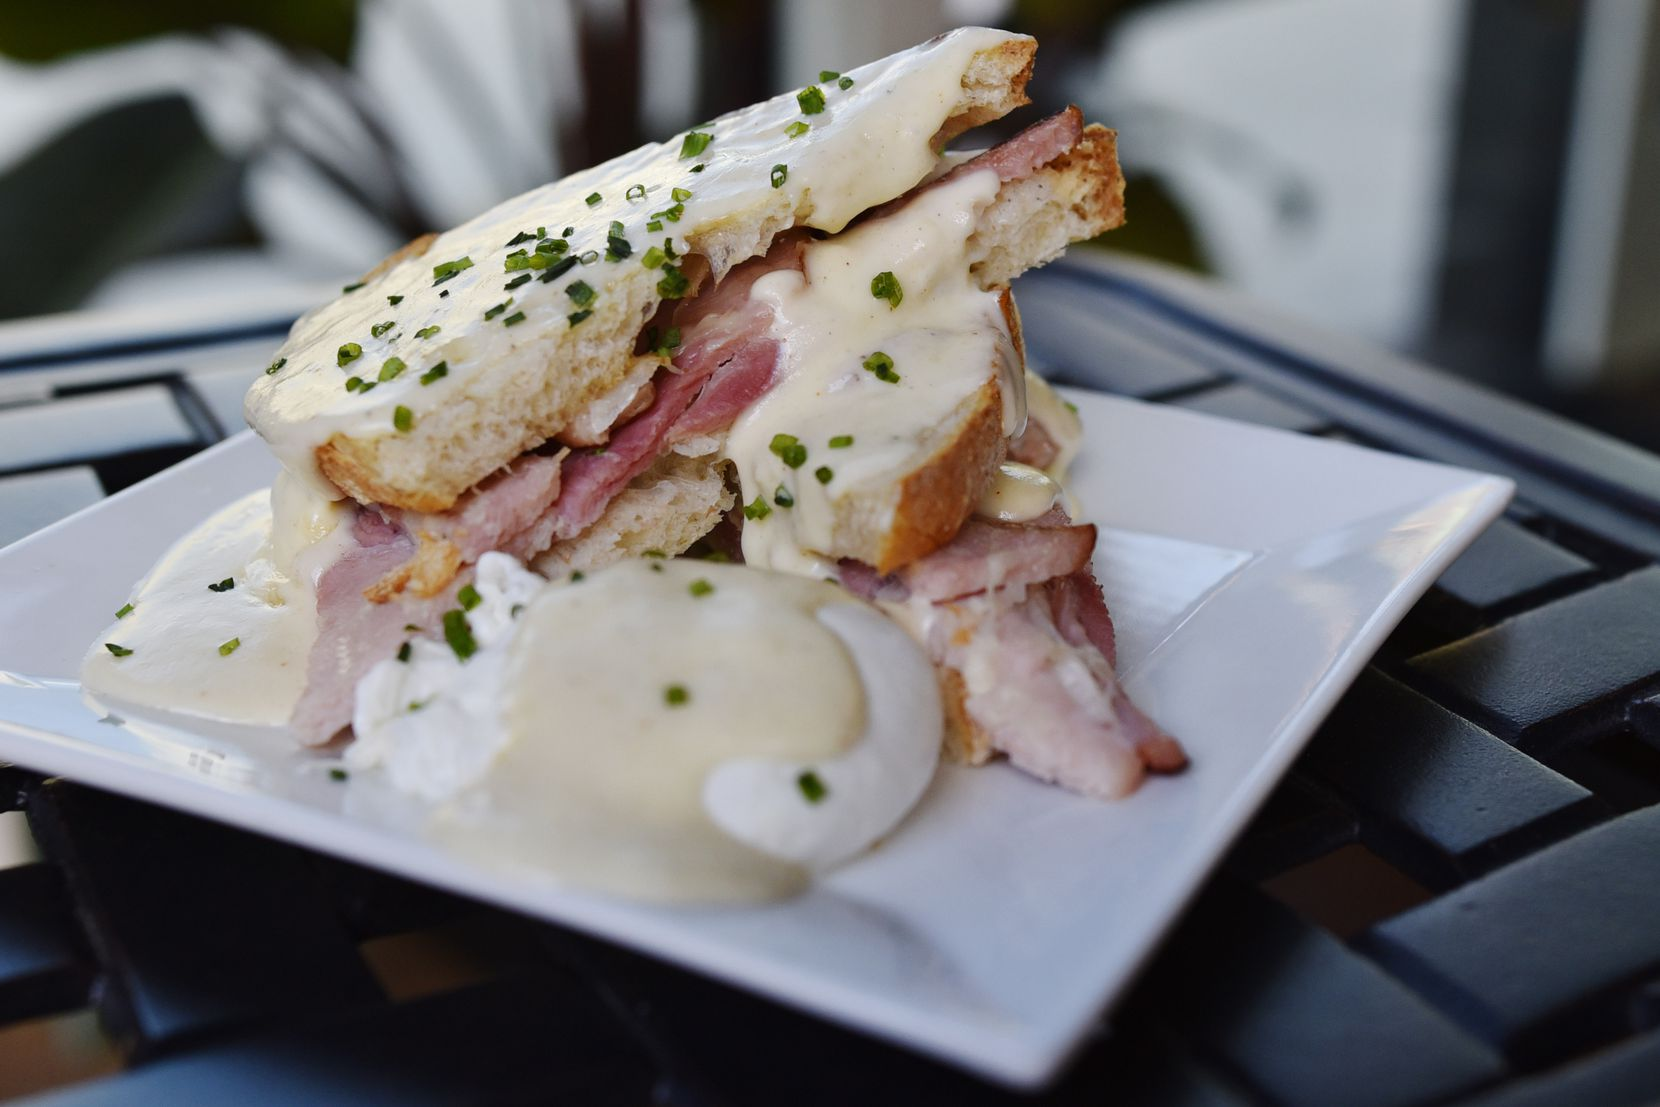 Croque madame, a breakfast sandwich with ham and gruyere on sourdough topped with a béchamel and a poached egg, is one of the items on the breakfast menu.